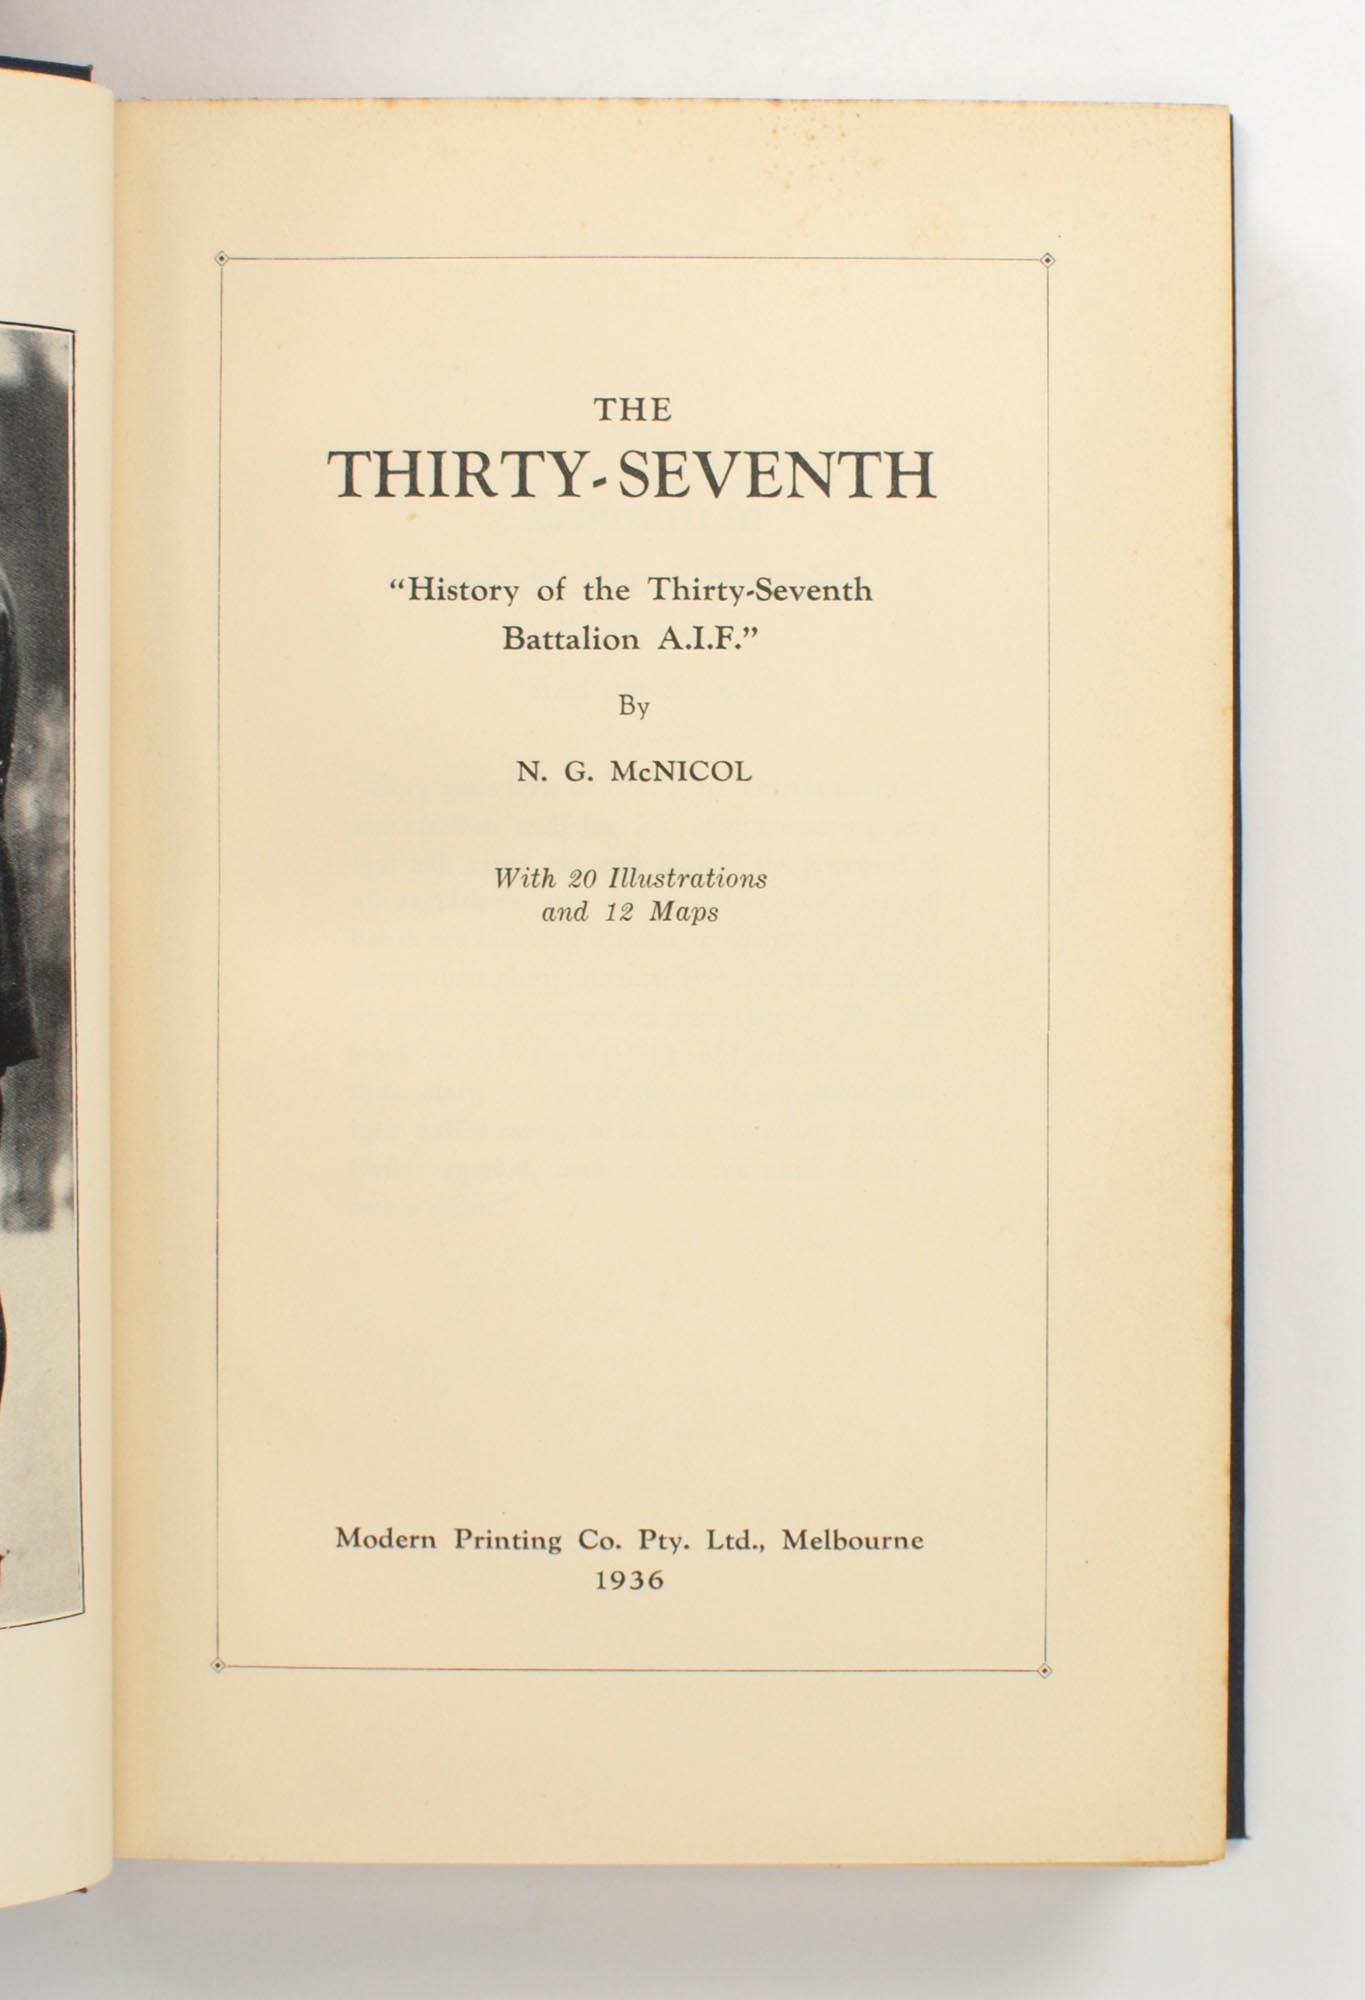 The Thirty Seventh History Of The Thirty Seventh Battalion Aif